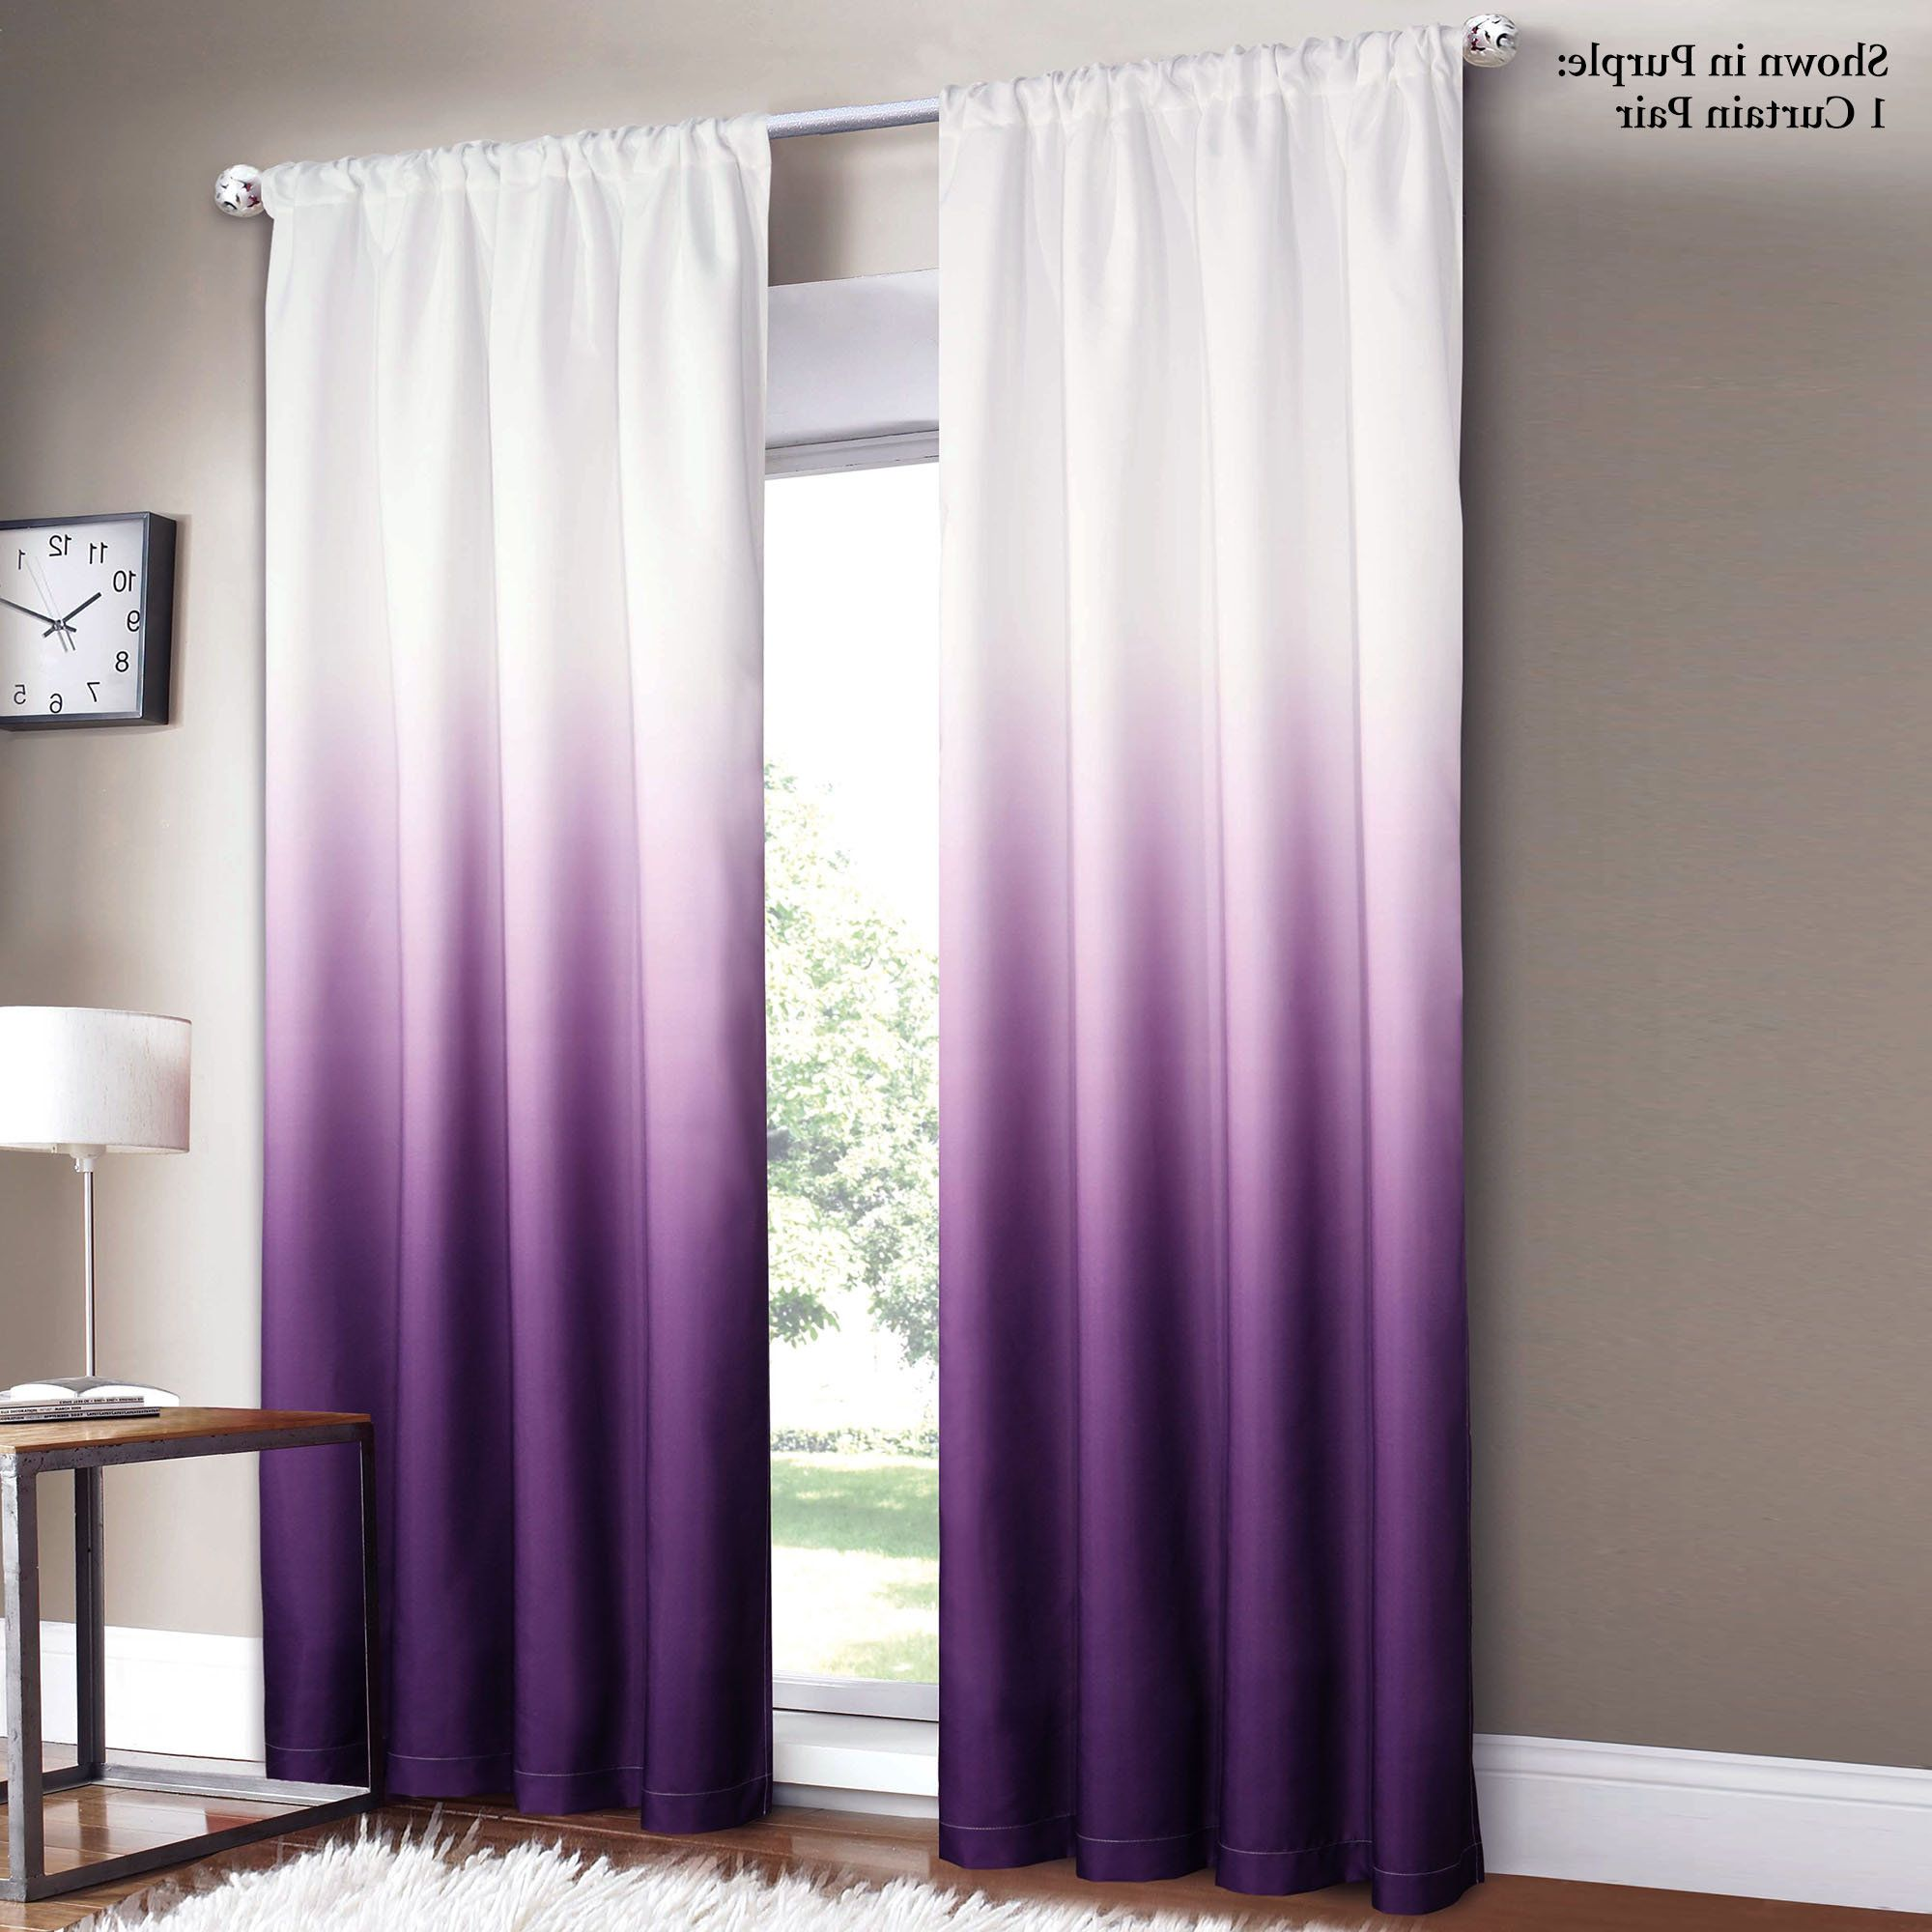 Best 25 Purple Kitchen Curtains Ideas On Pinterest Grey Office 22 Pretty Purple Kitchen